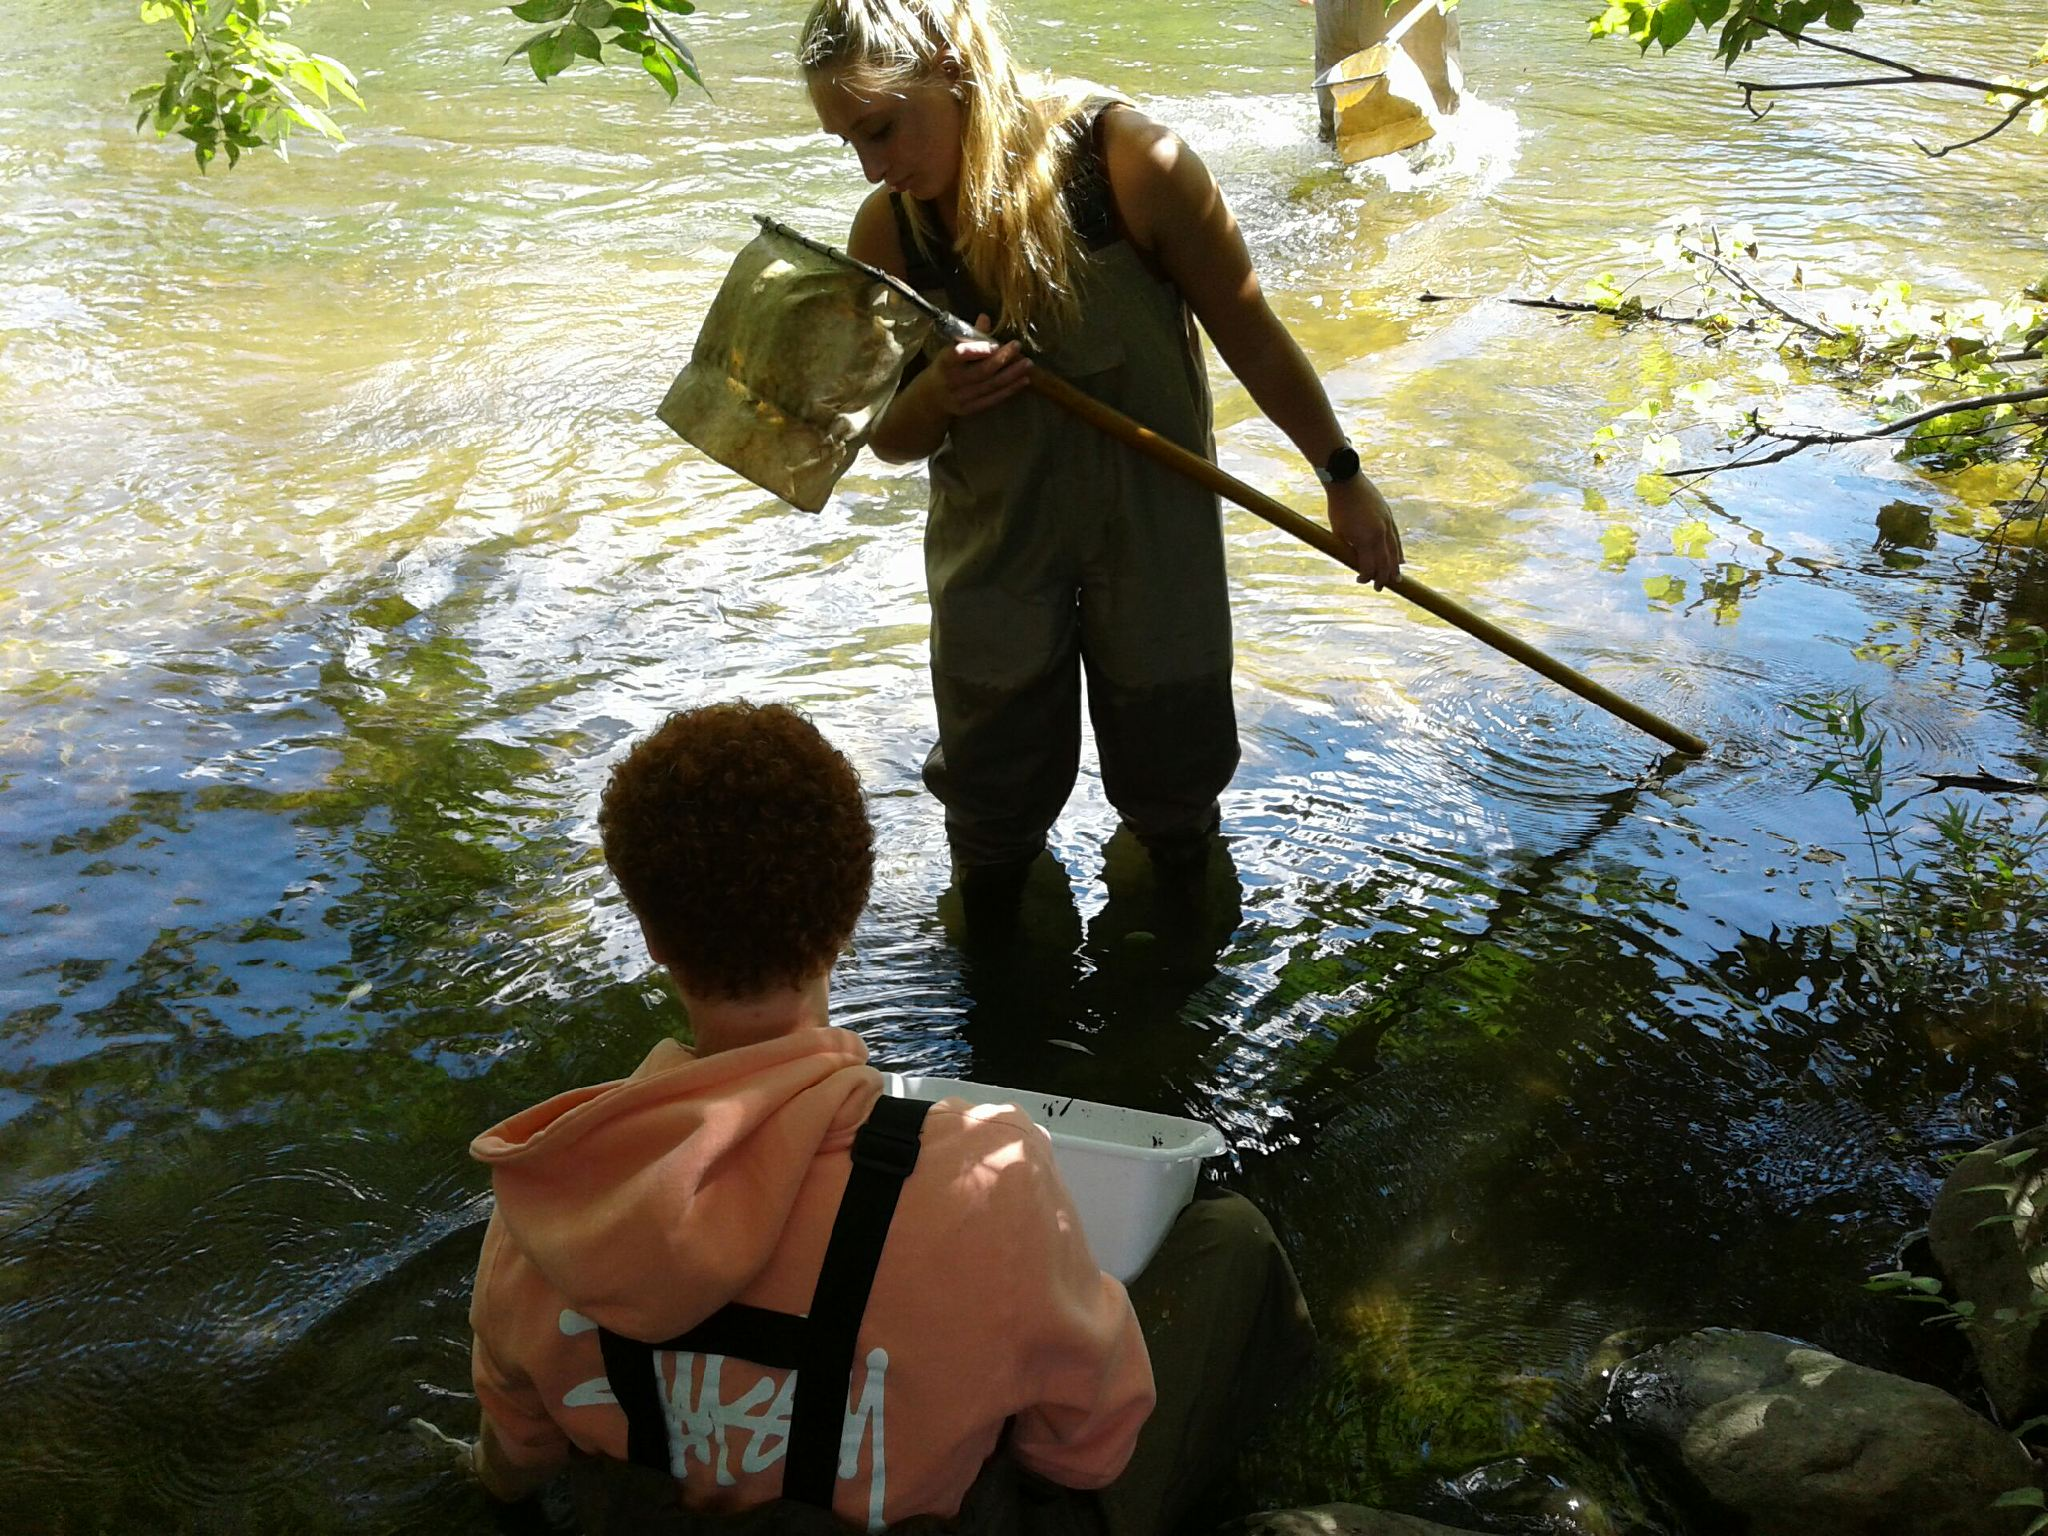 Two Students in River with Net